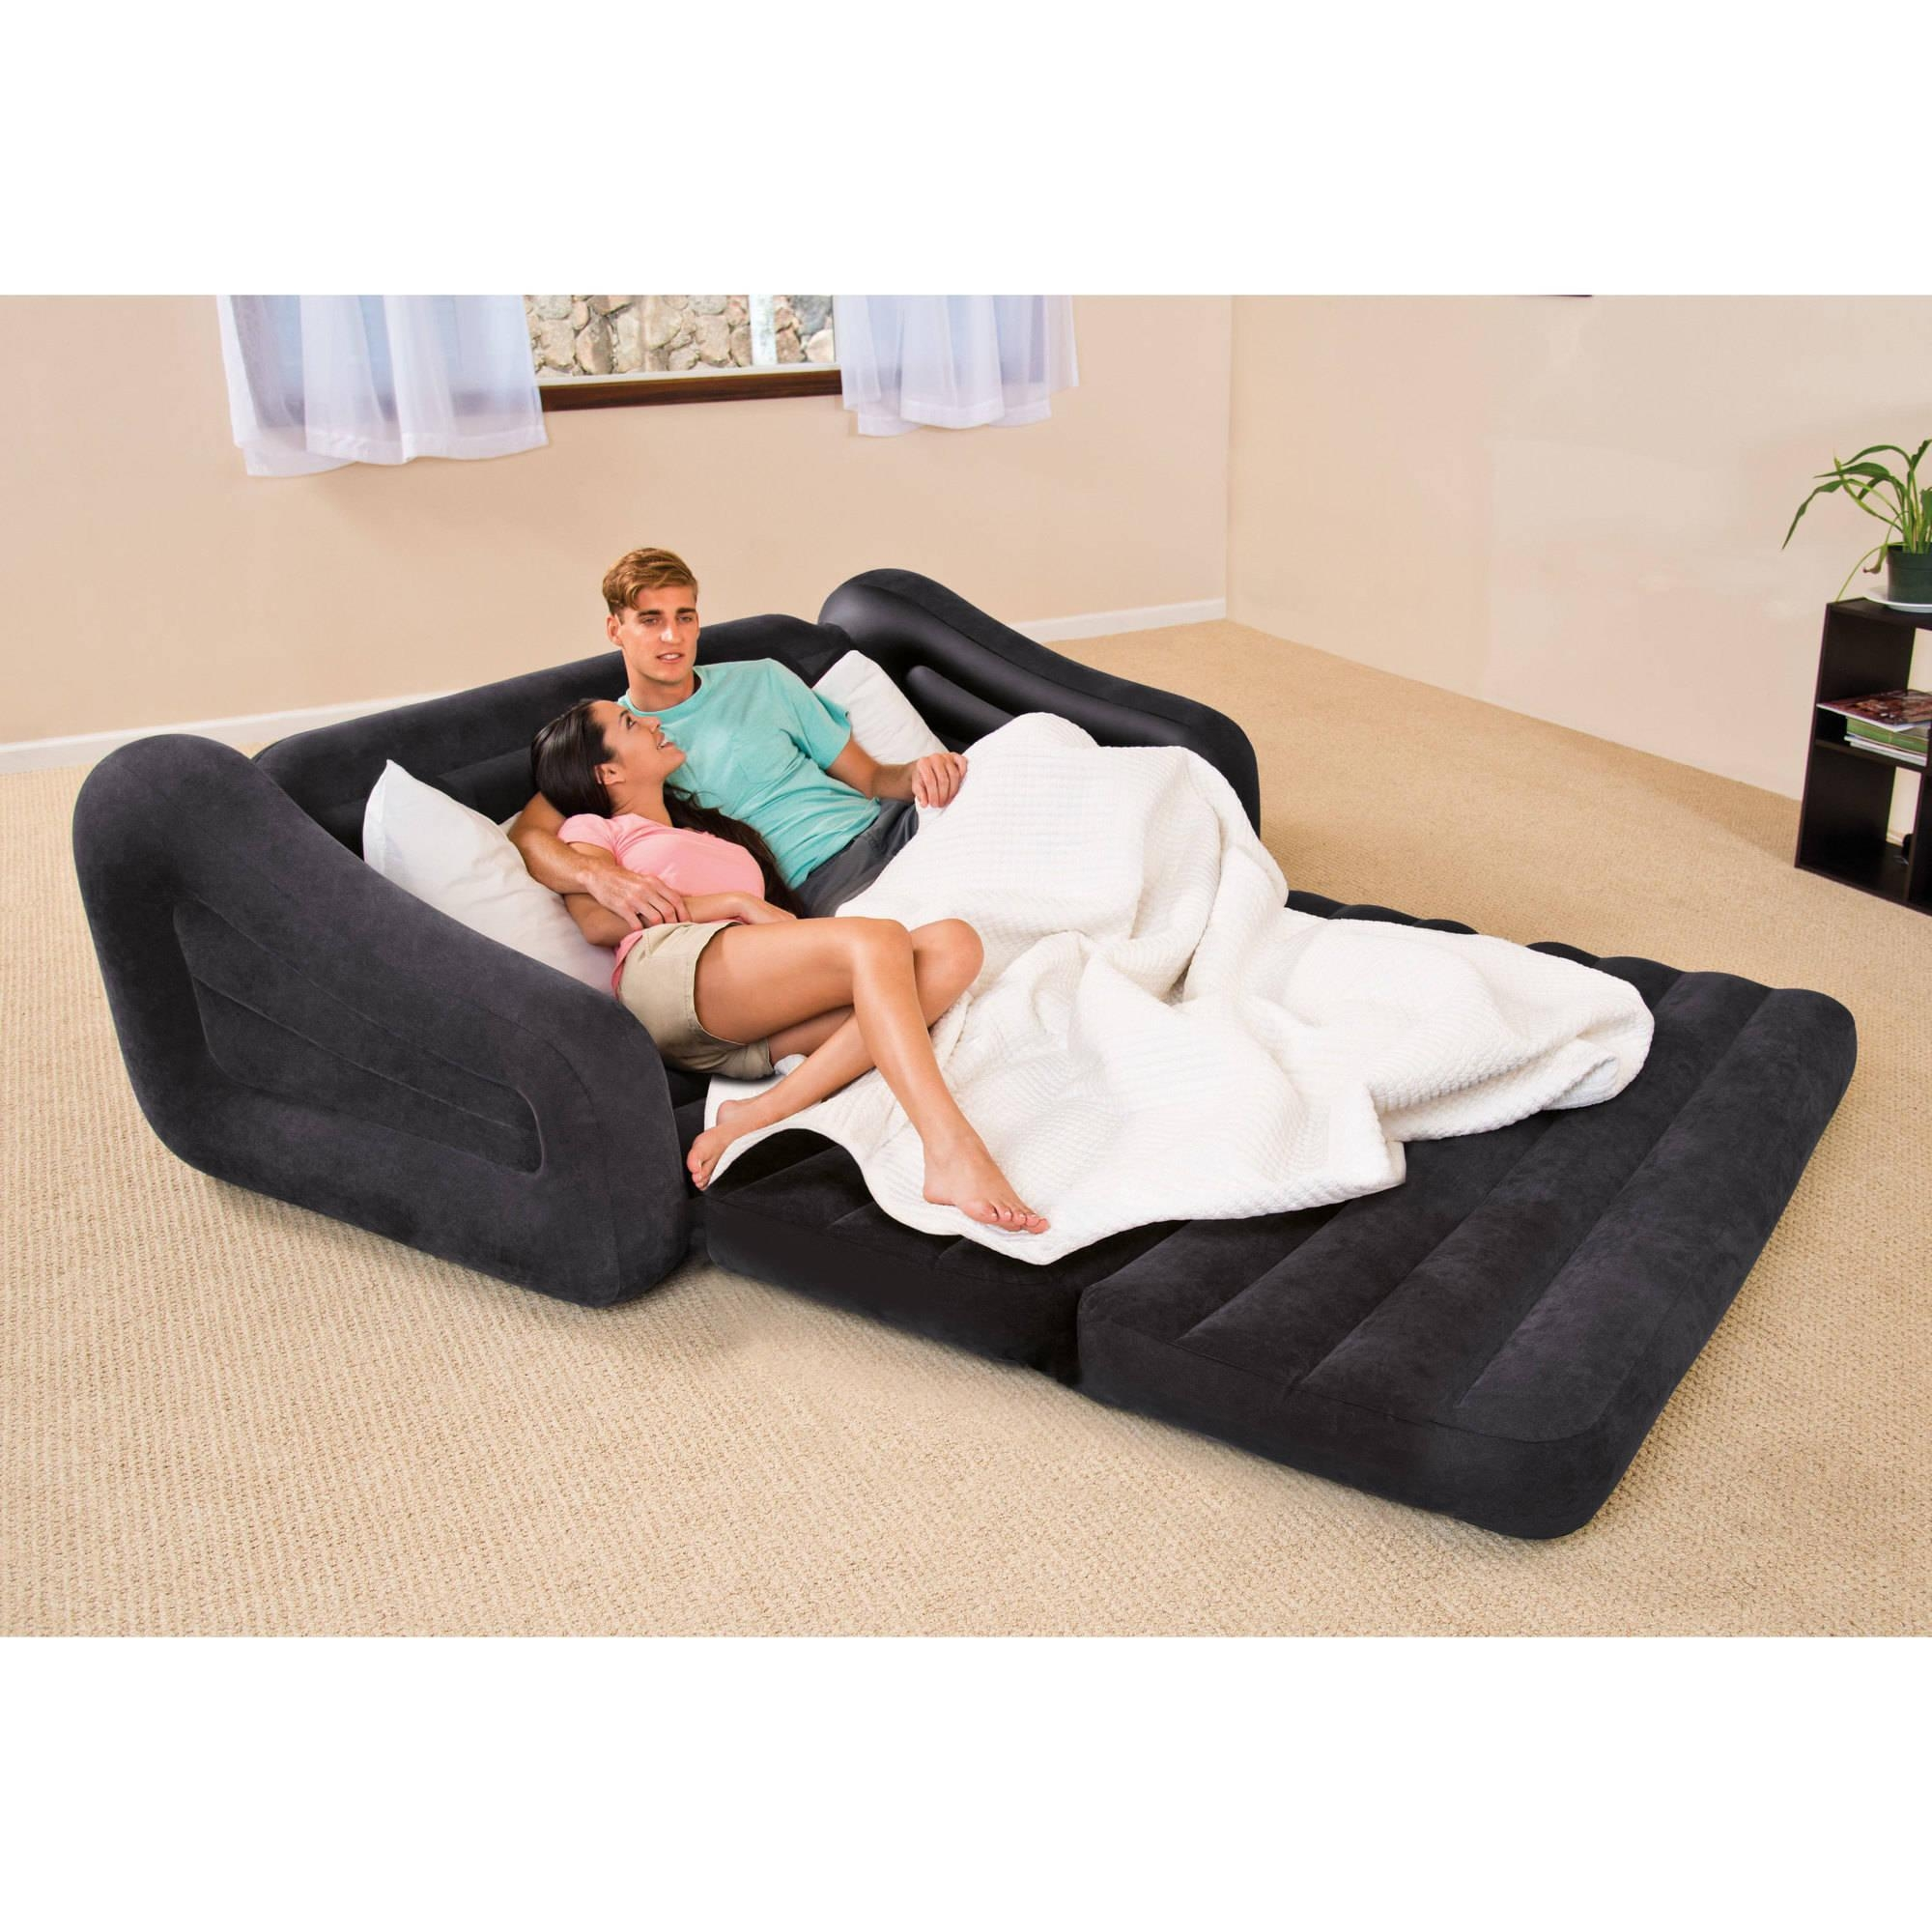 Intex Queen Inflatable Pull Out Sofa Bed – Walmart Pertaining To Inflatable Sofa Beds Mattress (Image 13 of 20)